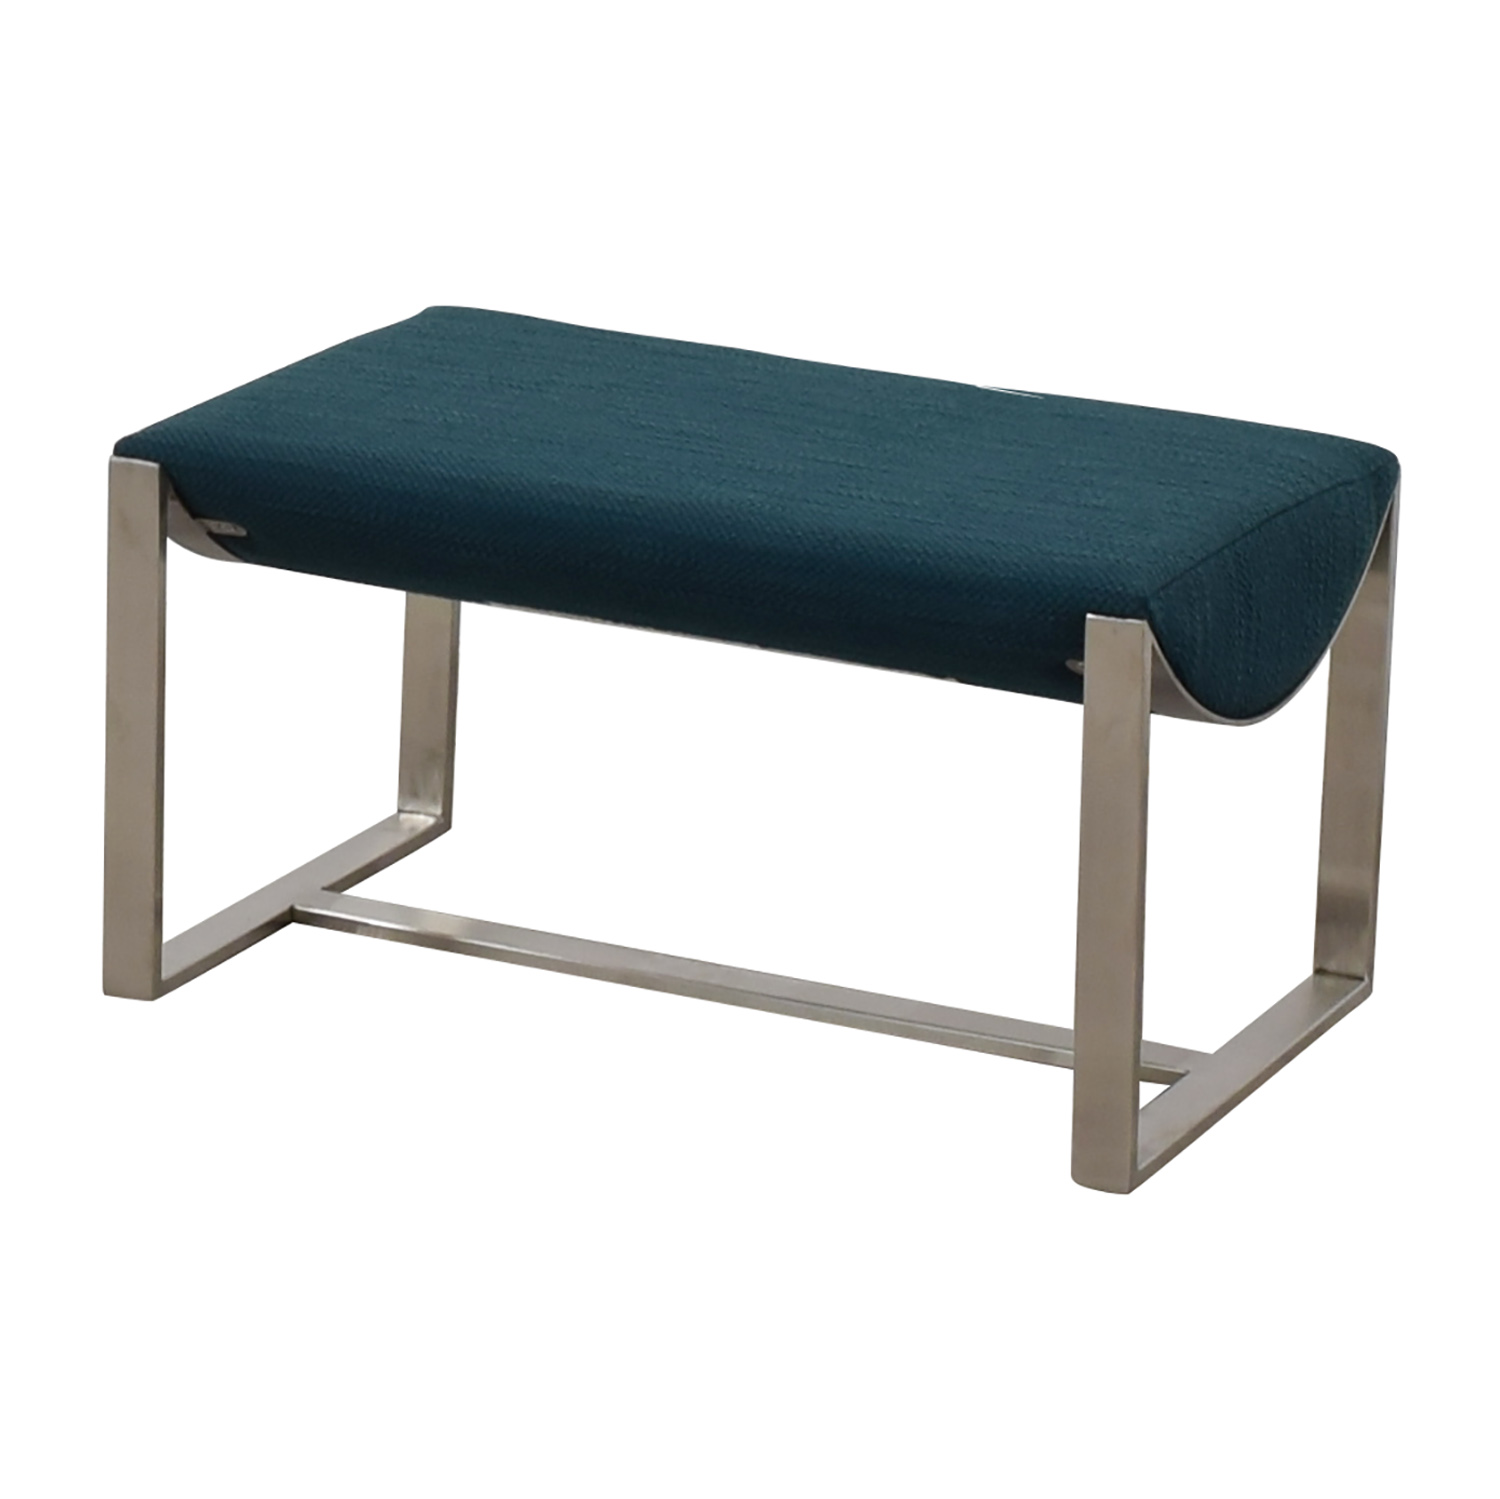 shop West Elm West Elm Bower Teal and Chrome Ottoman online